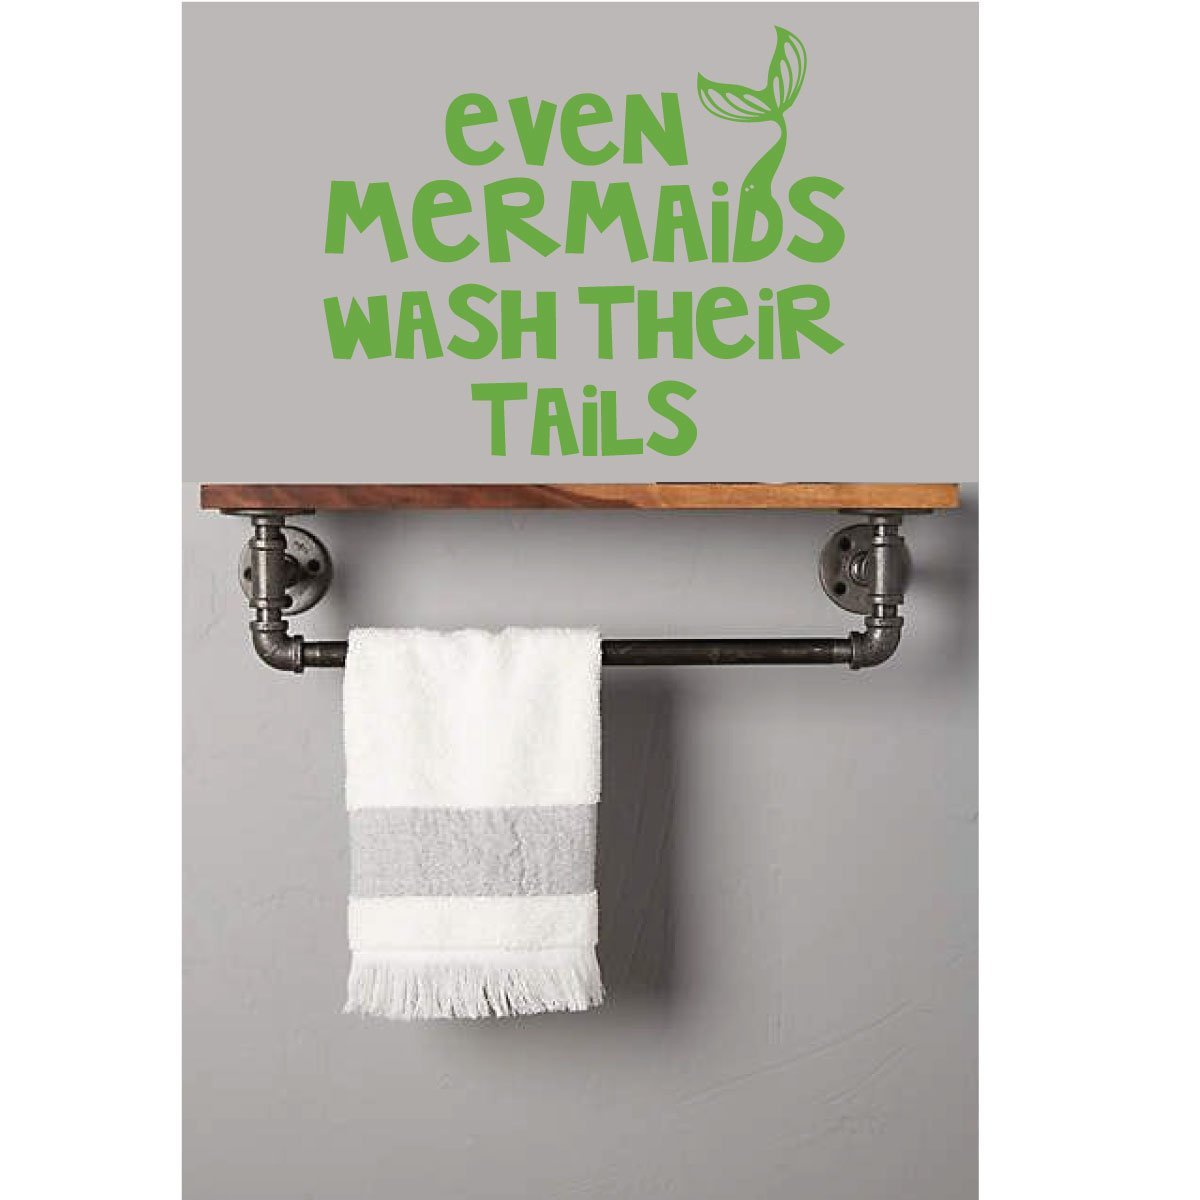 Even Mermaids Wash Their Tails Quote Bathroom Vinyl Wall Decal Home Decor